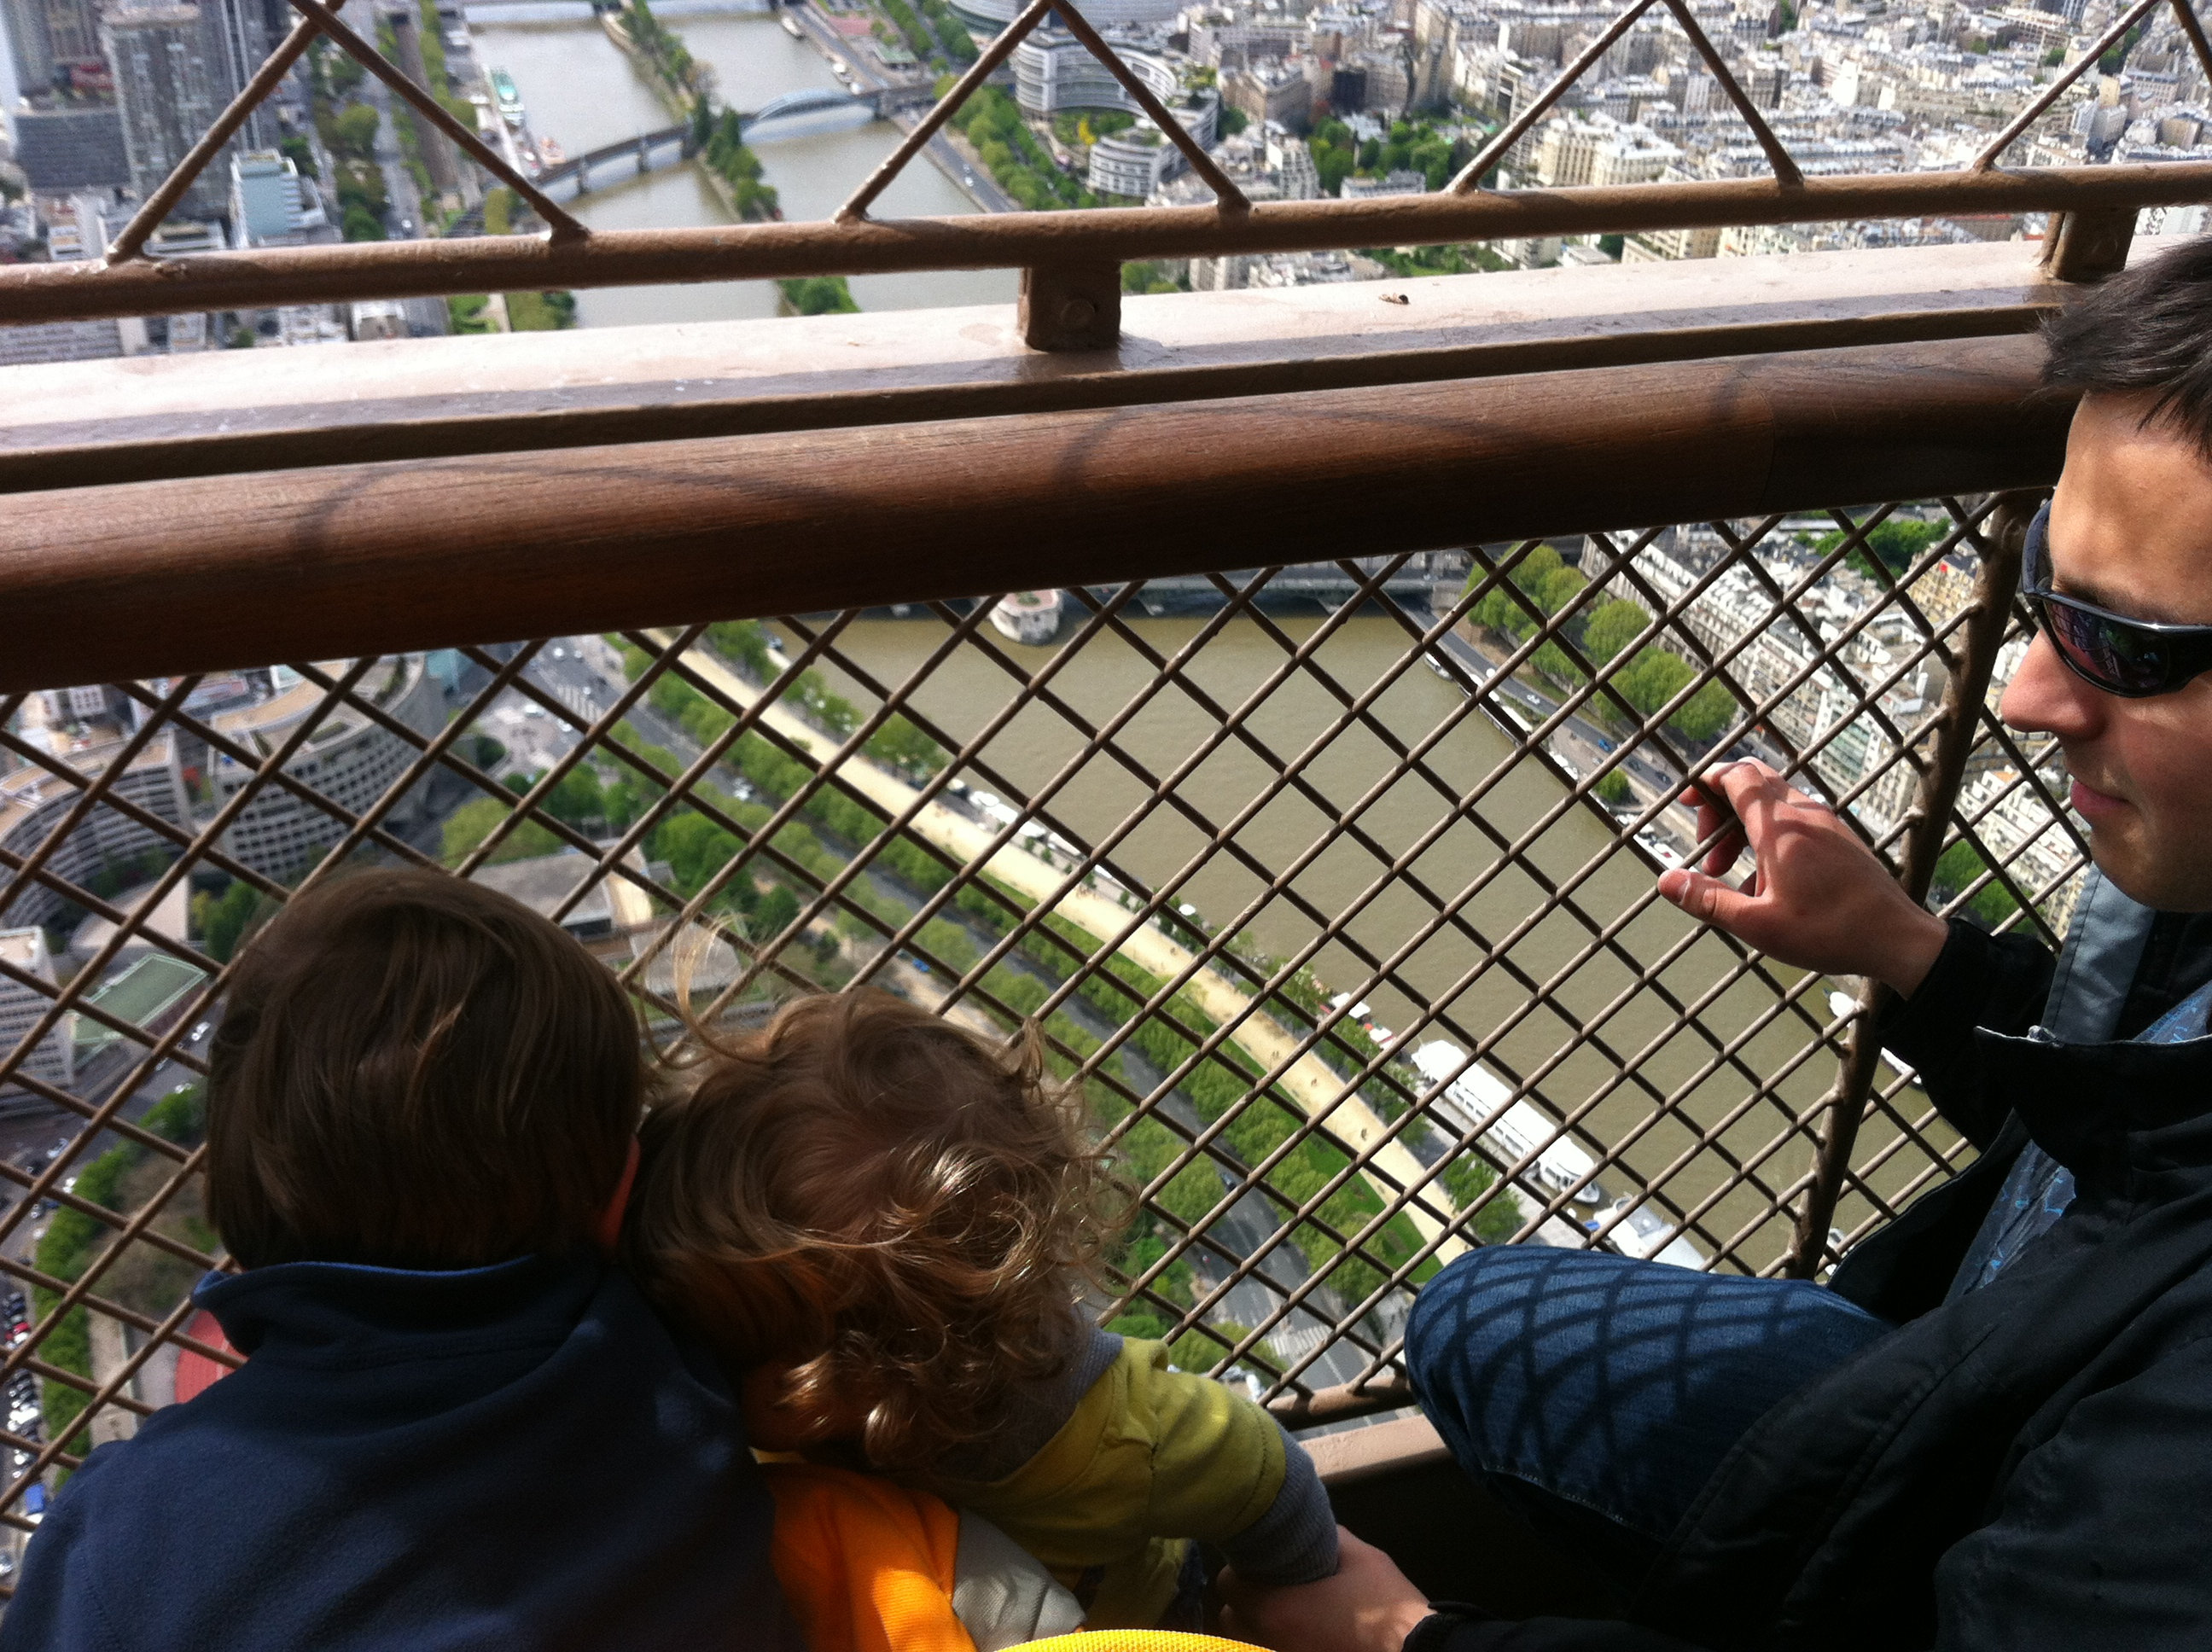 Looking down on Paris, together.